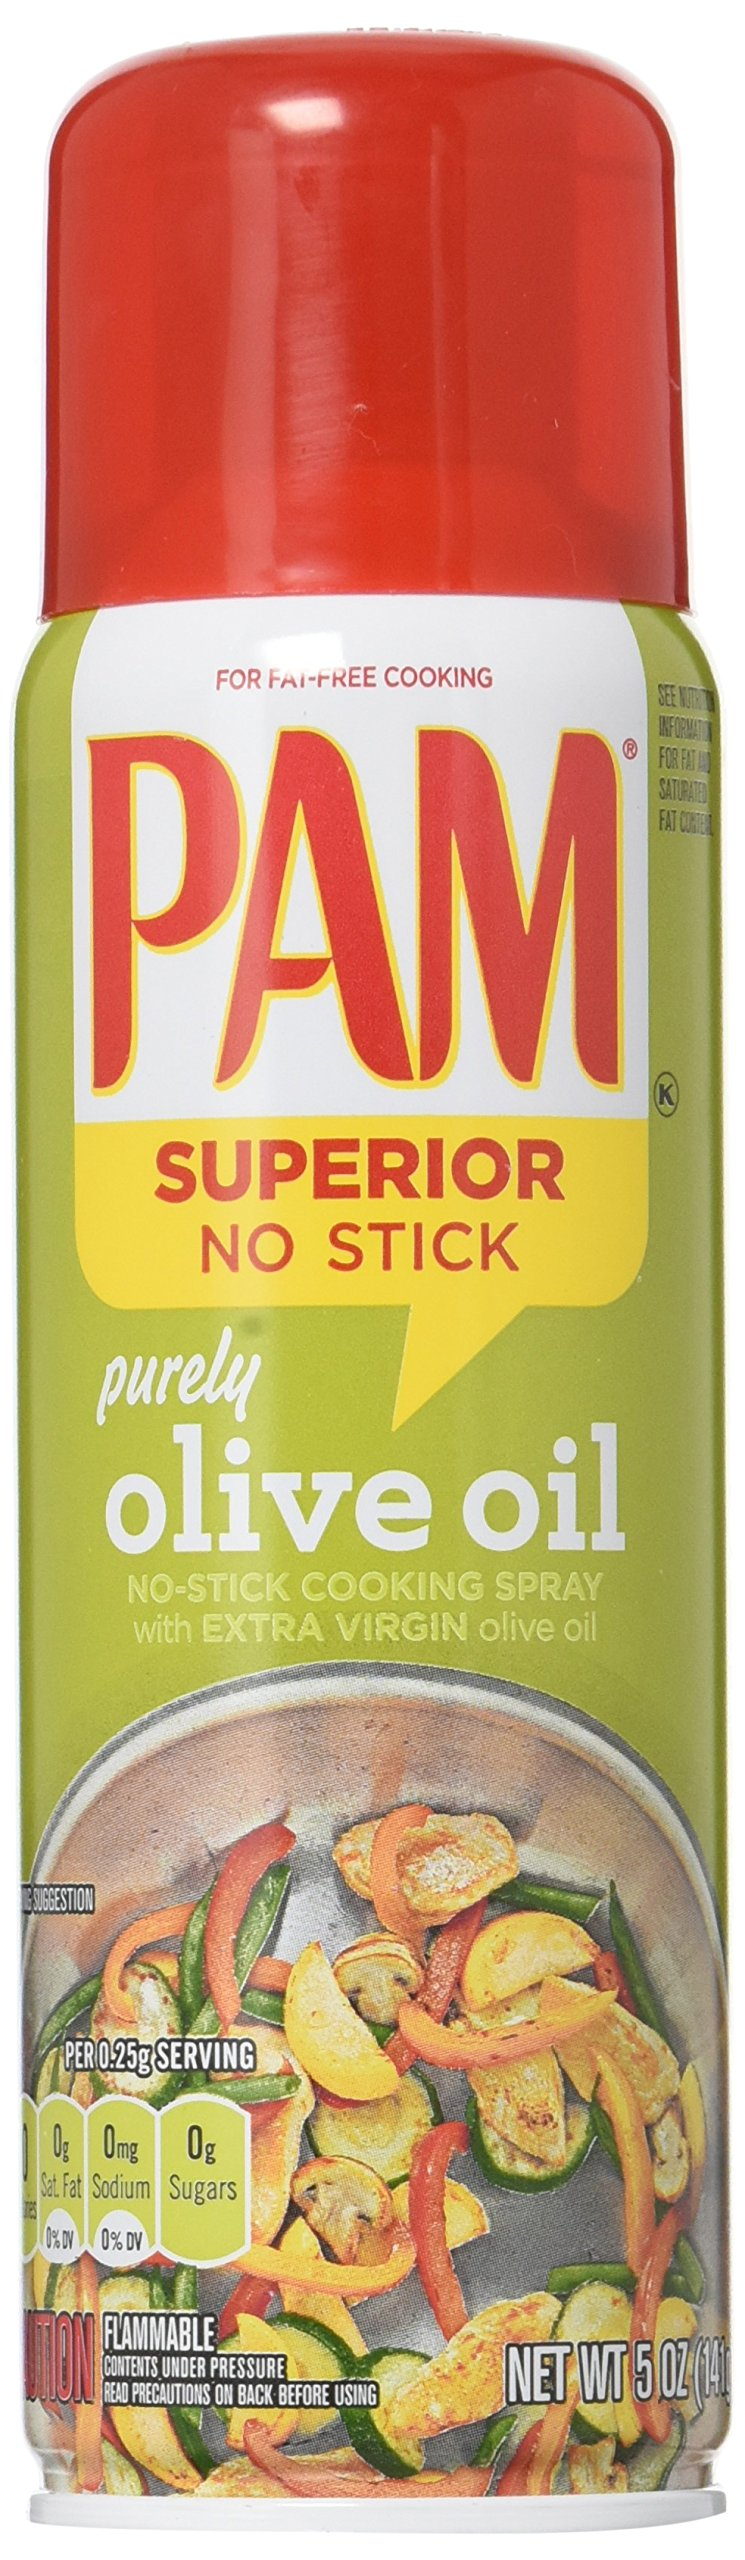 Pam No-Stick Cooking Spray - Purely Olive Oil - Superior No Stick With Extra Virgin Olive Oil - Net Wt. 5 OZ (141 g) Each - Pack of 2